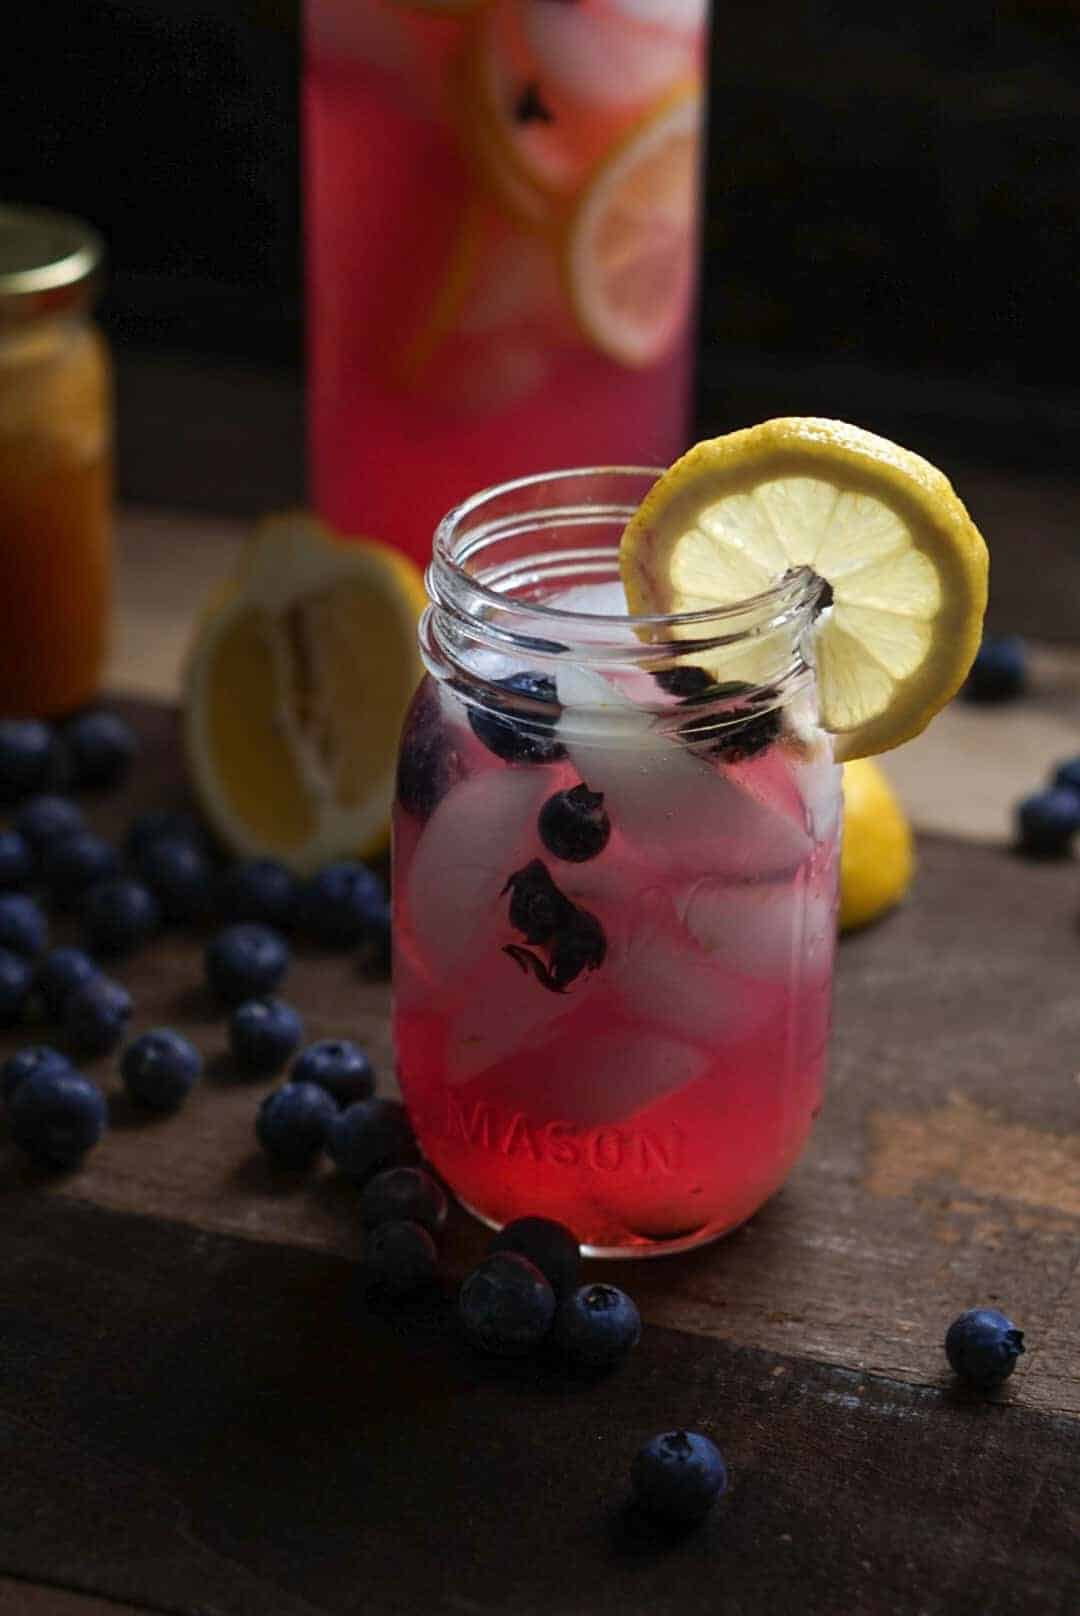 up-close glass of pink blueberry lemonade